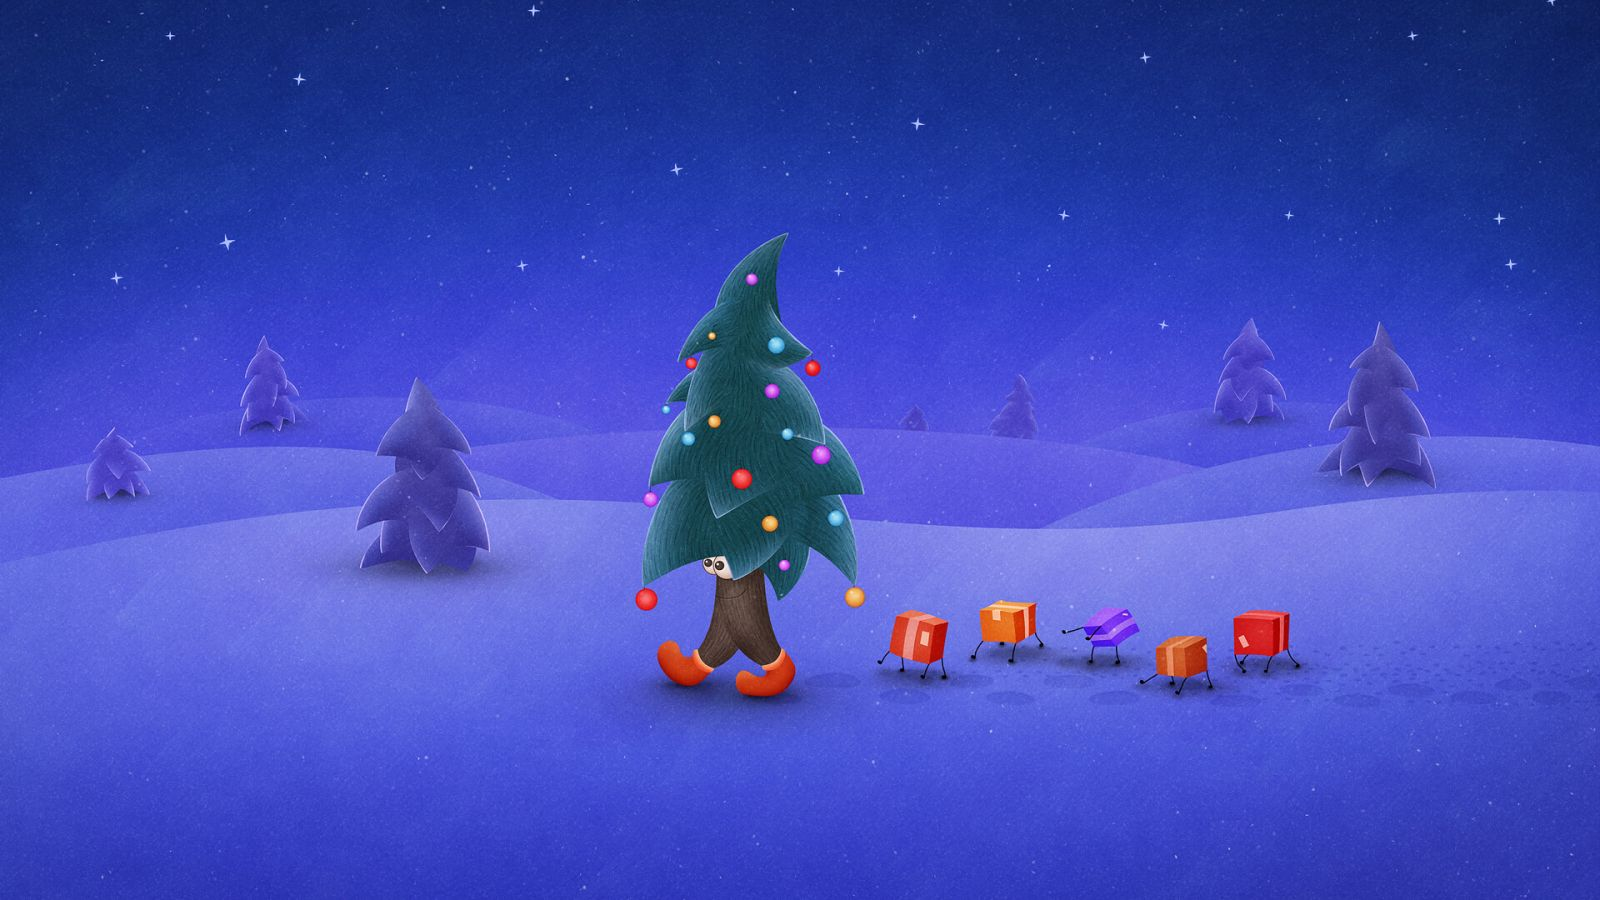 traveling Christmas tree wallpaper for mac